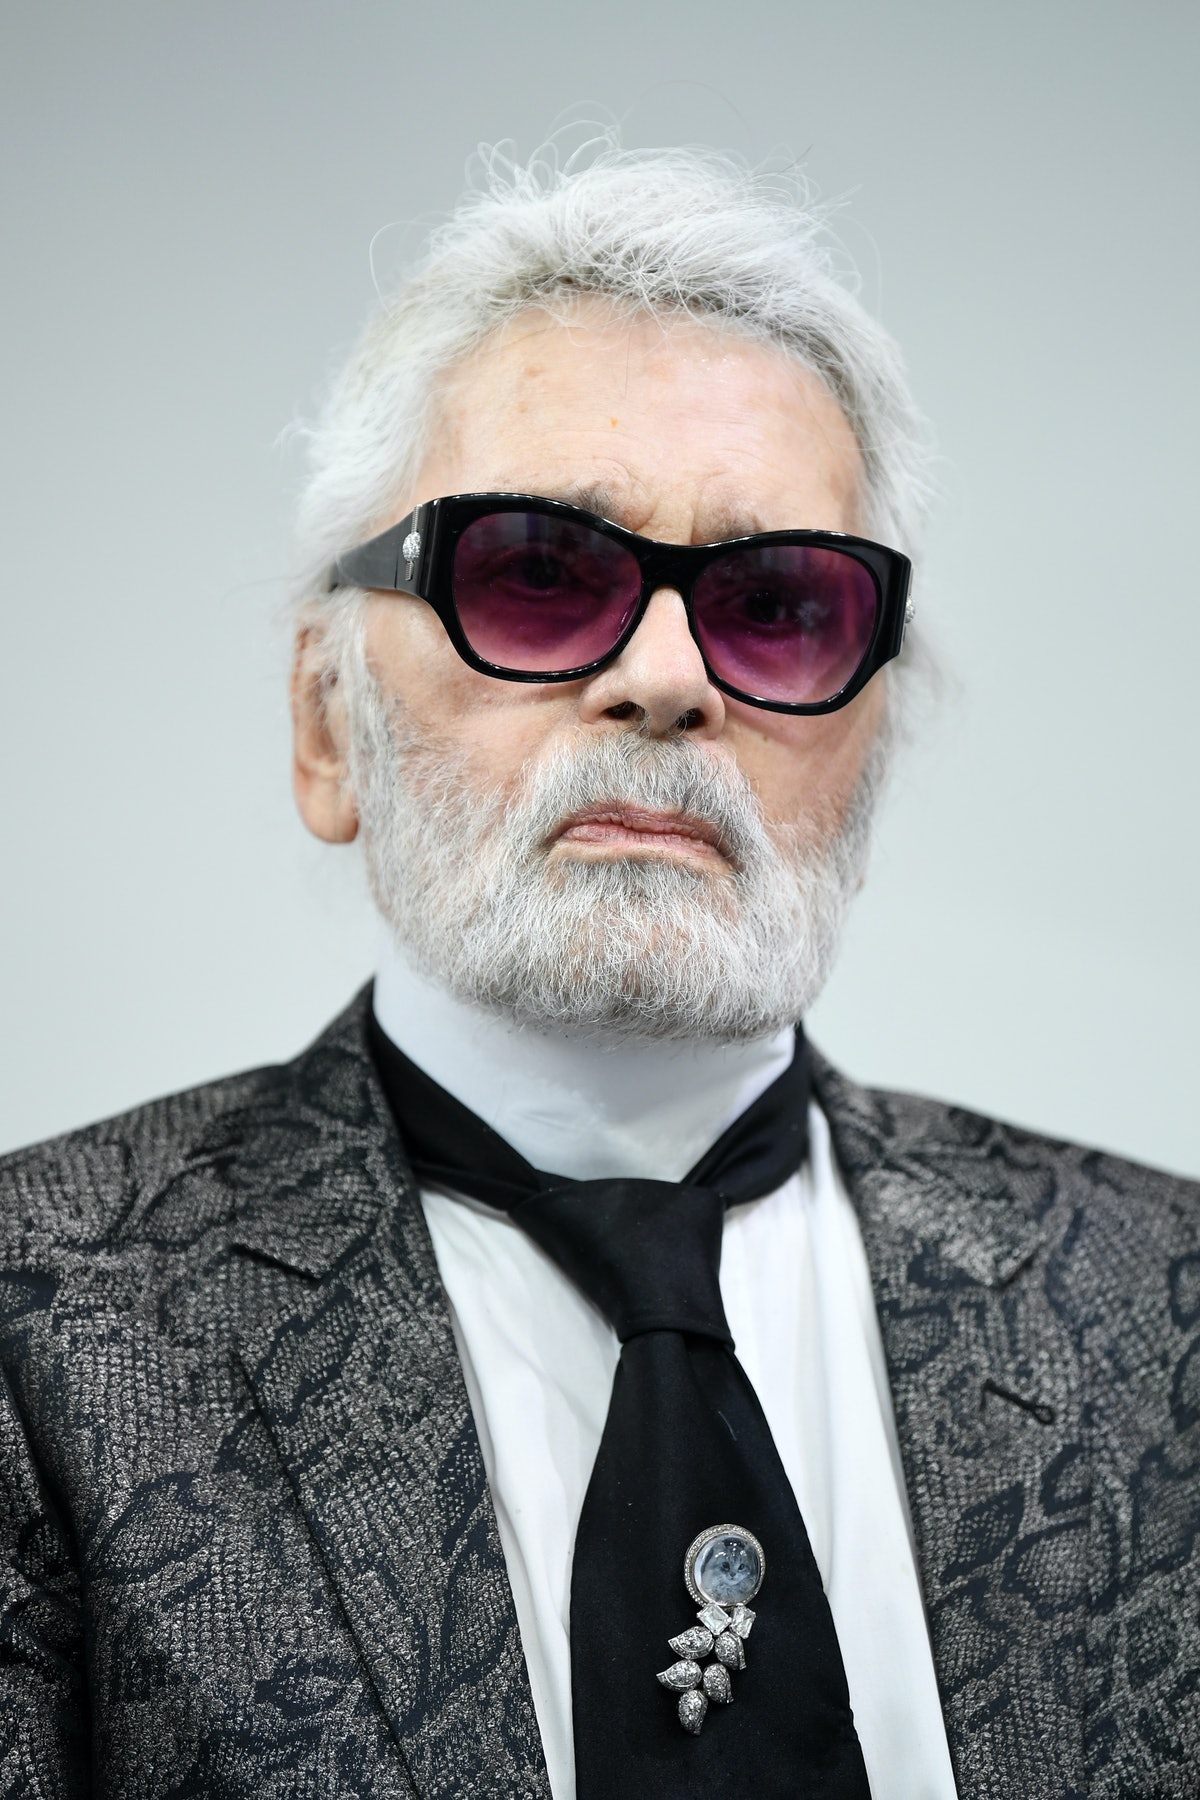 Celebrity Reactions To Karl Lagerfeld's Death Include Moving Tributes From Gigi Hadid, Victoria Beckham, & More - PHOTOS